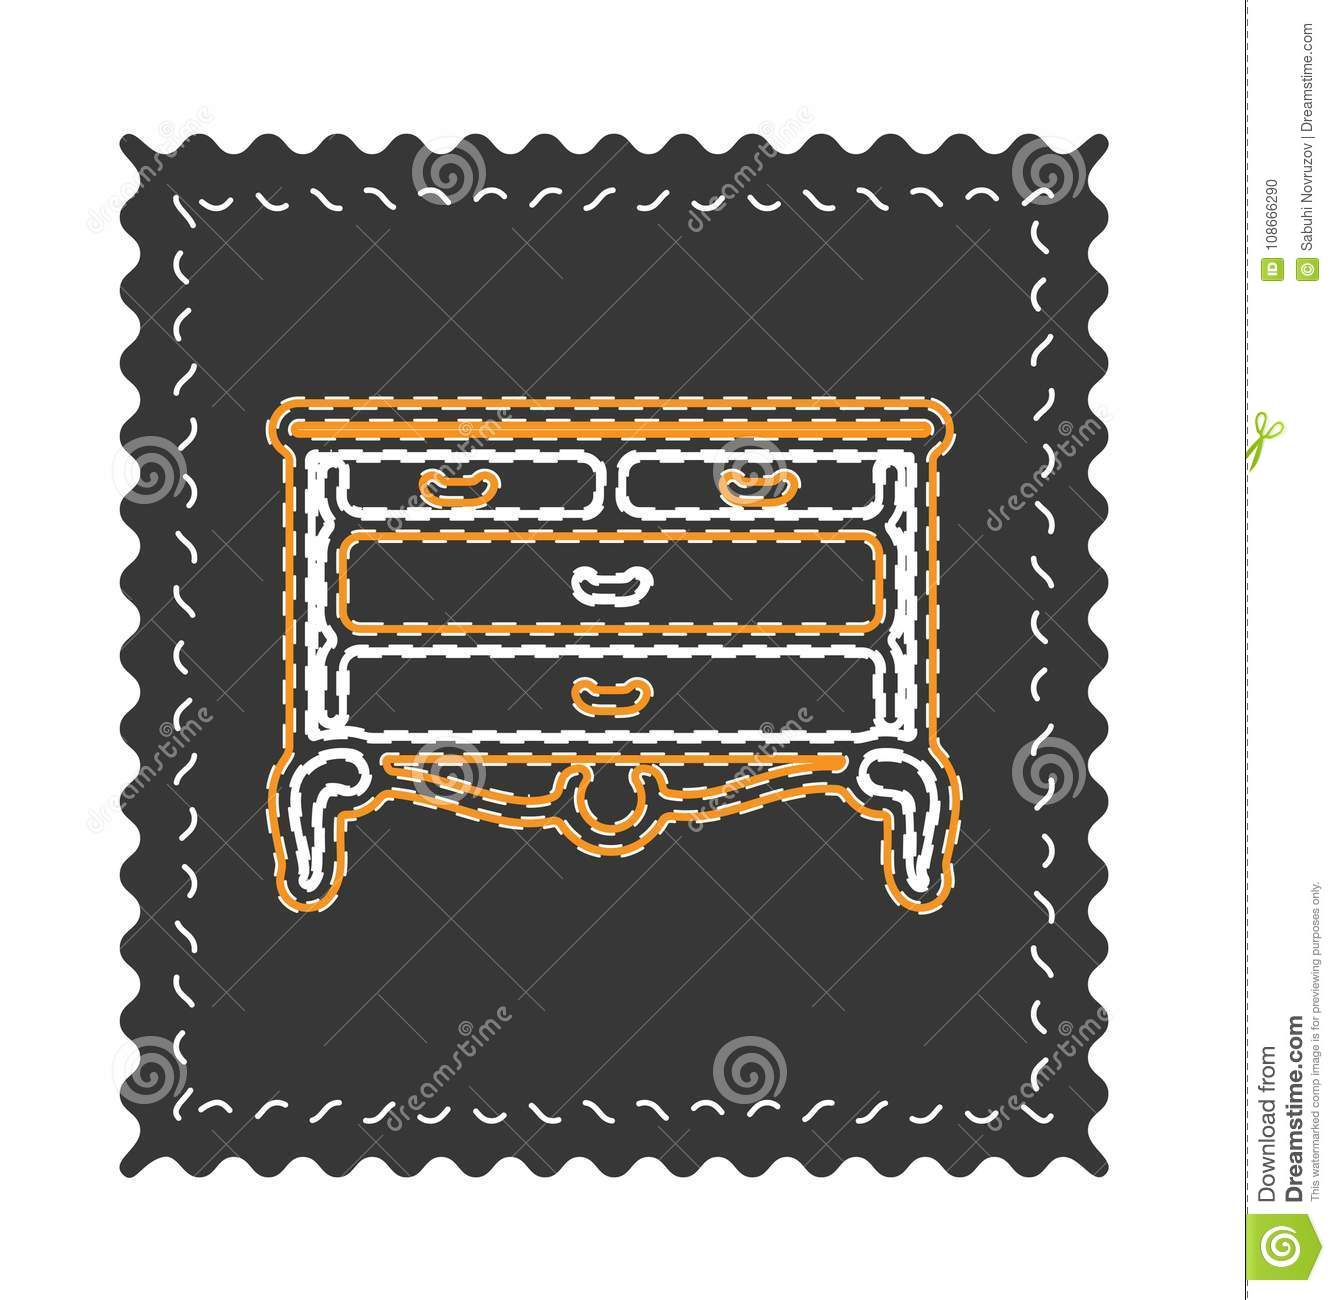 Vintage chest of drawers vector, old fancy ornament.